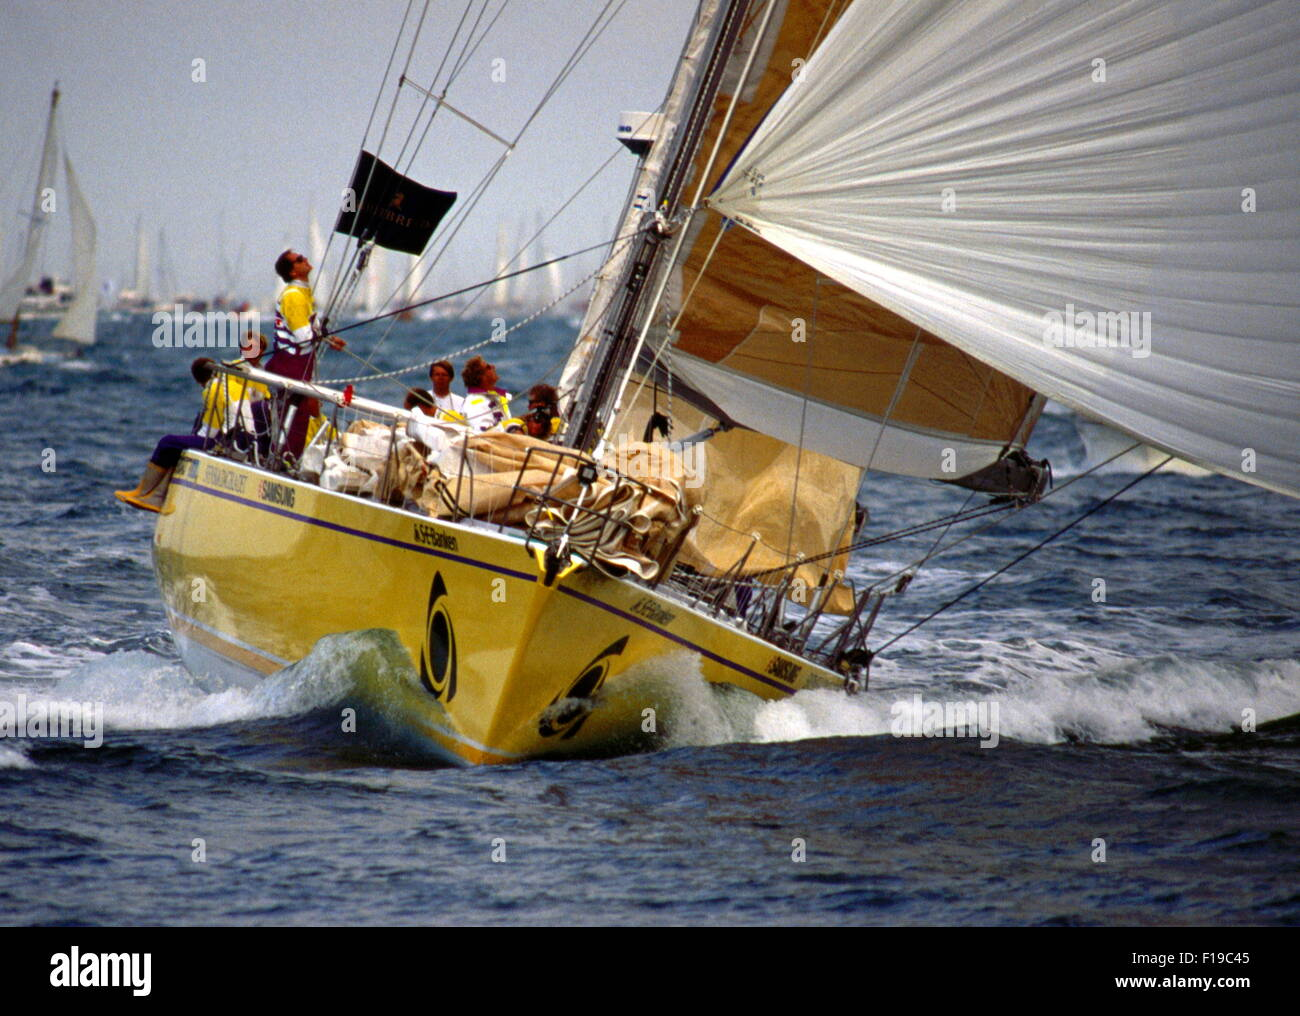 AJAXNETPHOTO. 1989. SOLENT, ENGLAND. - WHITBREAD RACE YACHT - THE CARD (SWEDEN) SKIPPERED BY ROGER NILSON IS A BRUCE - Stock Image